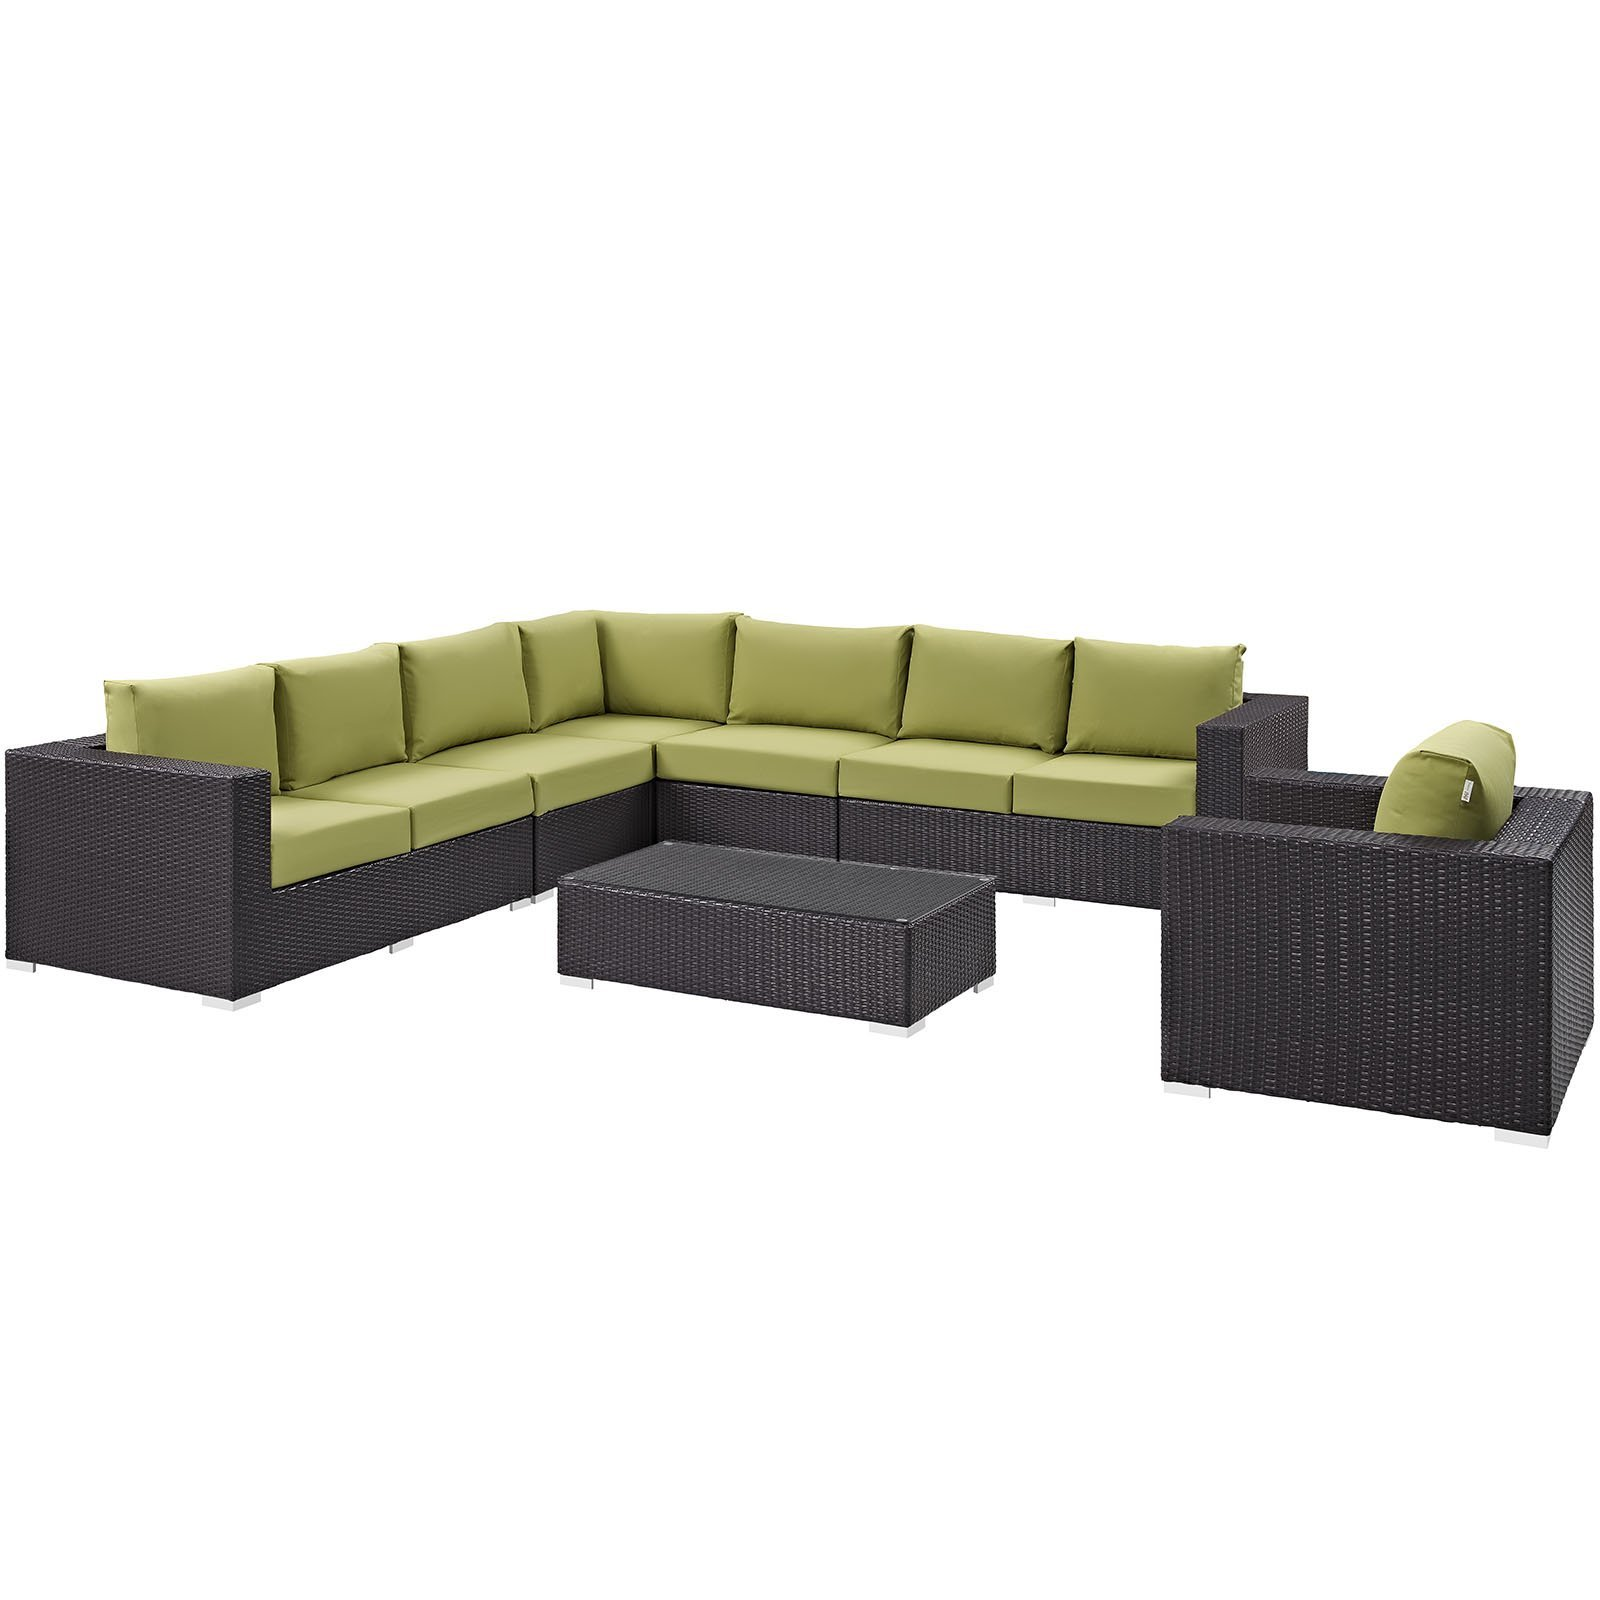 Convene 7 Piece Outdoor Patio Sectional Set EEI-2162-EXP-PER-SET